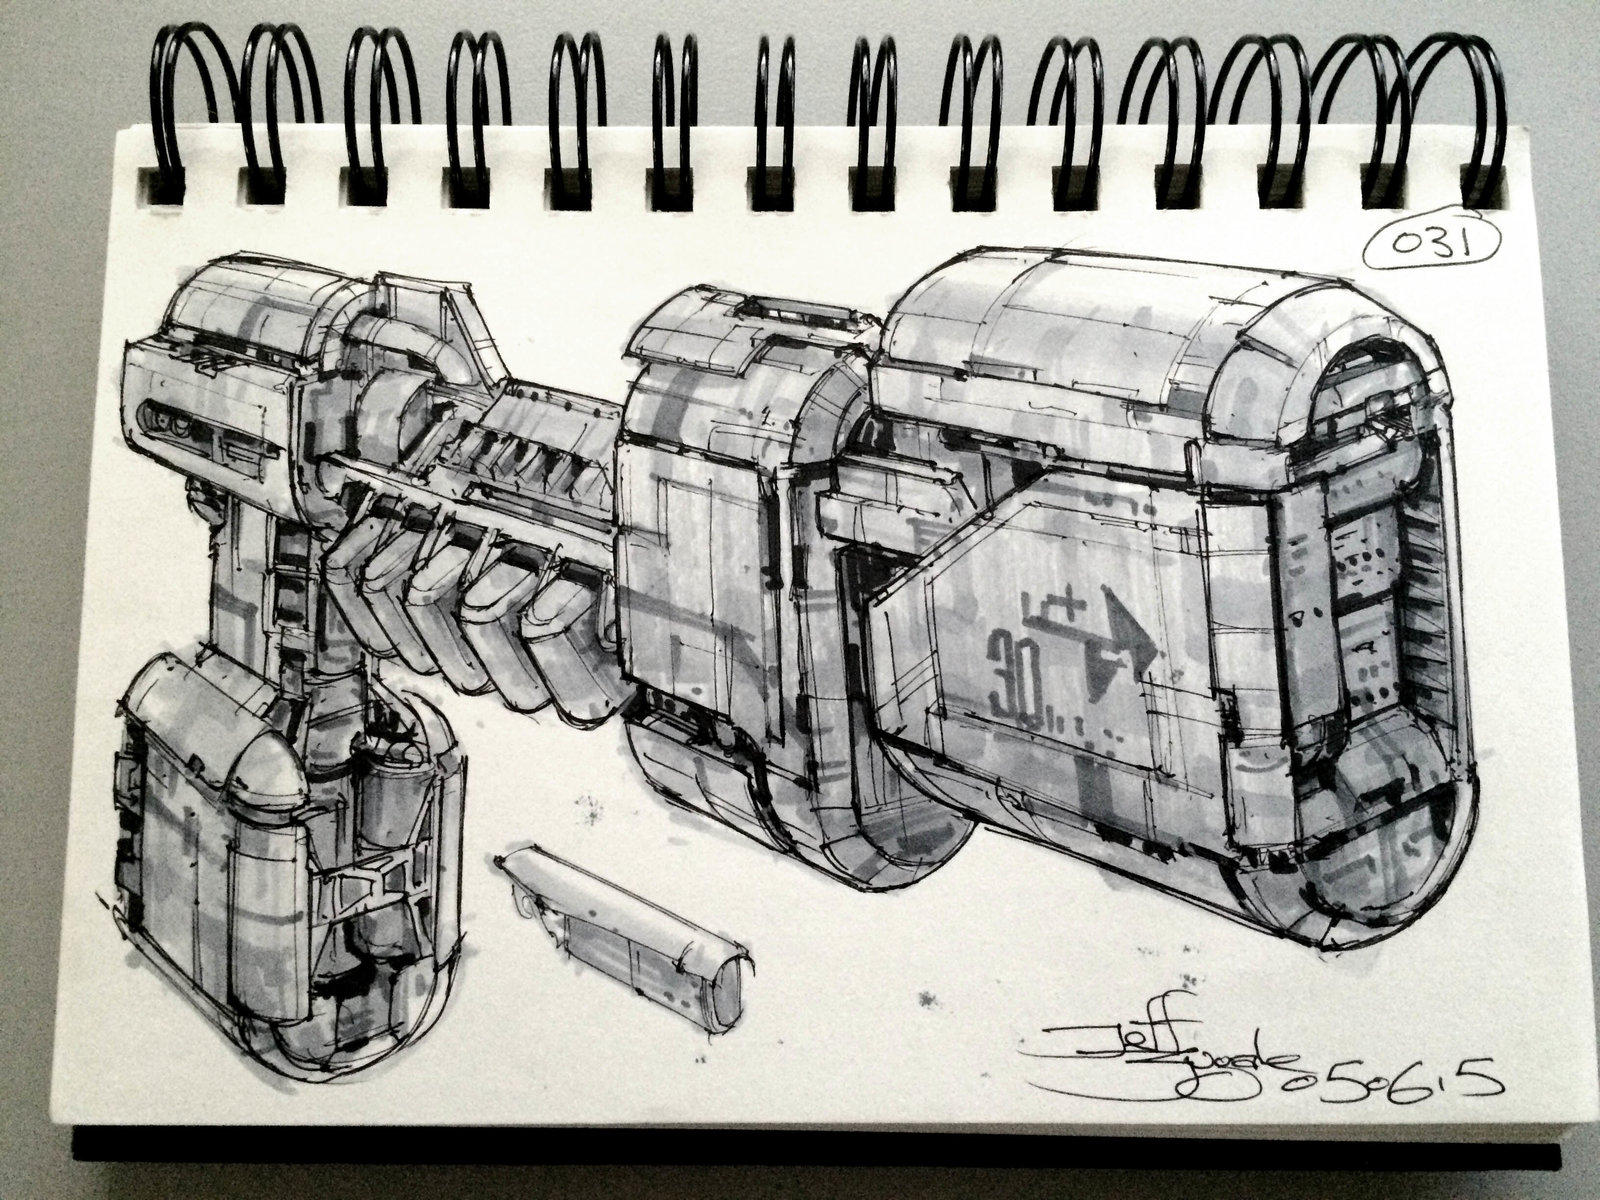 SpaceshipADay 031